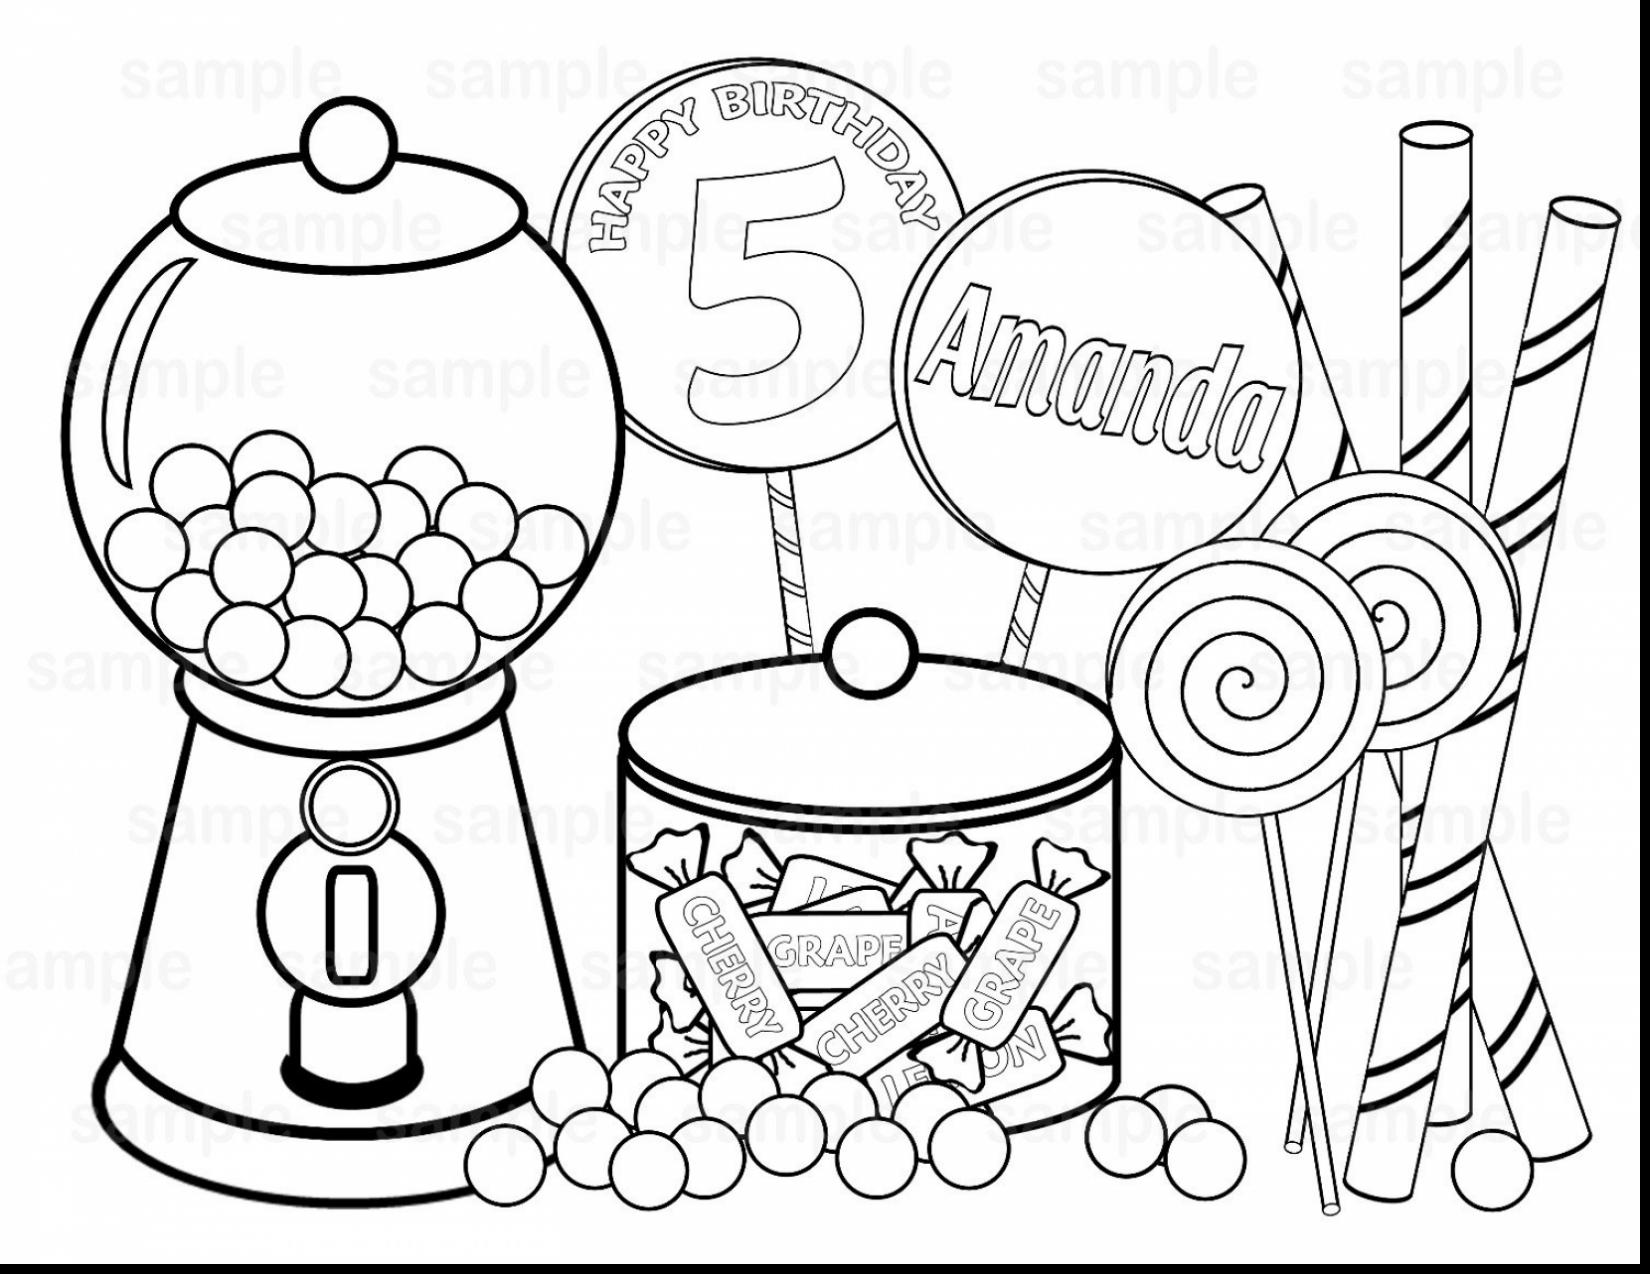 candyland coloring sheets printable candyland coloring pages for kids cool2bkids sheets coloring candyland 1 1